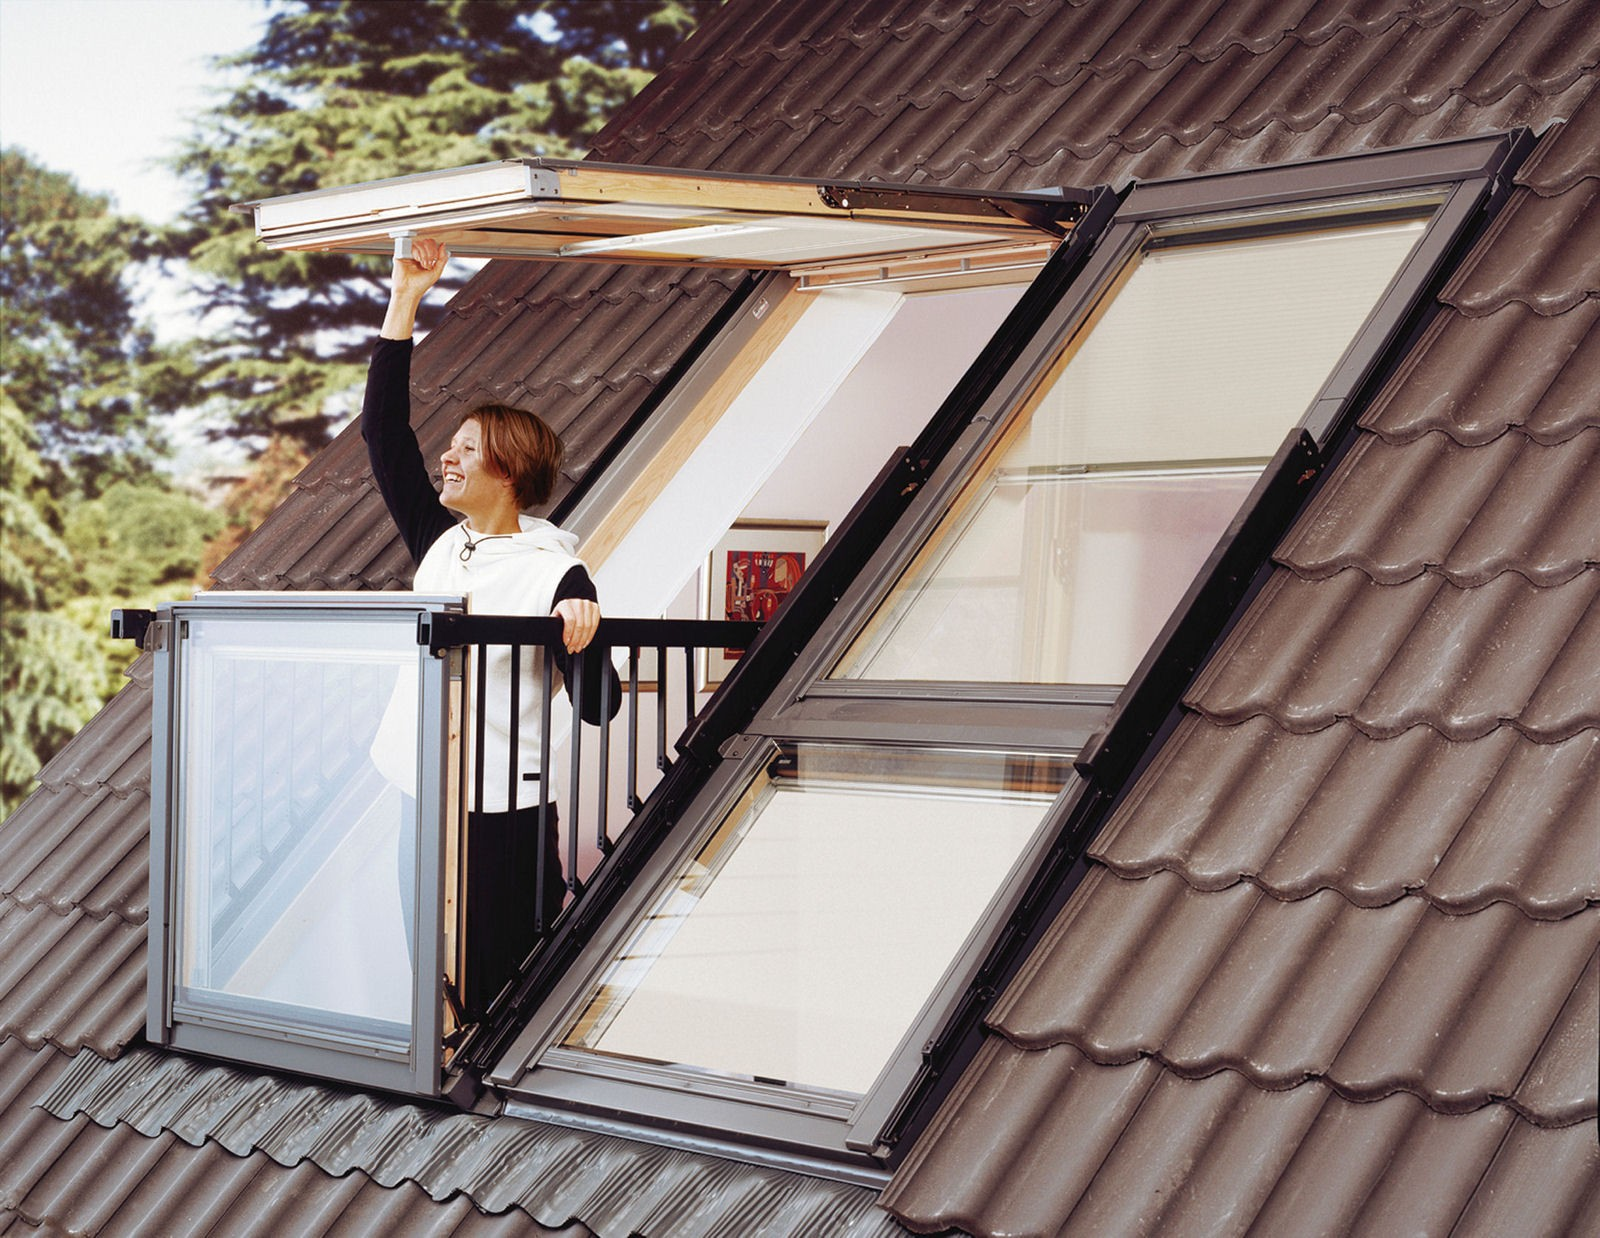 dachfenster cabrio duo velux gdl pk19 energie holz klar lackiert